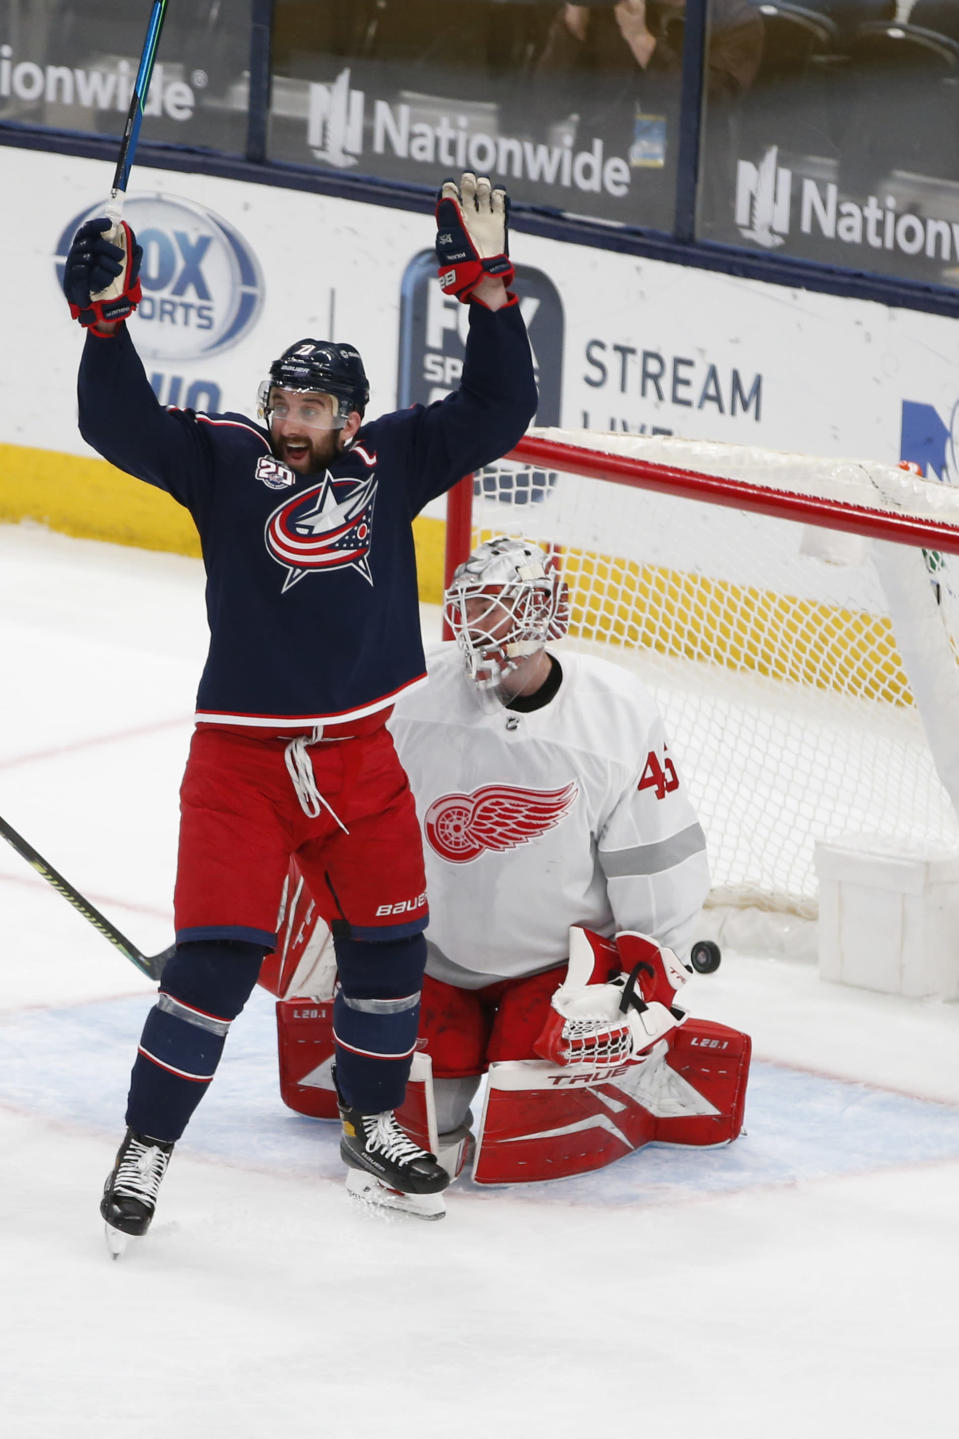 Columbus Blue Jackets' Nick Foligno, left, celebrates their goal against Detroit Red Wings' Jonathan Bernier during the second period of an NHL hockey game Tuesday, March 2, 2021, in Columbus, Ohio. (AP Photo/Jay LaPrete)